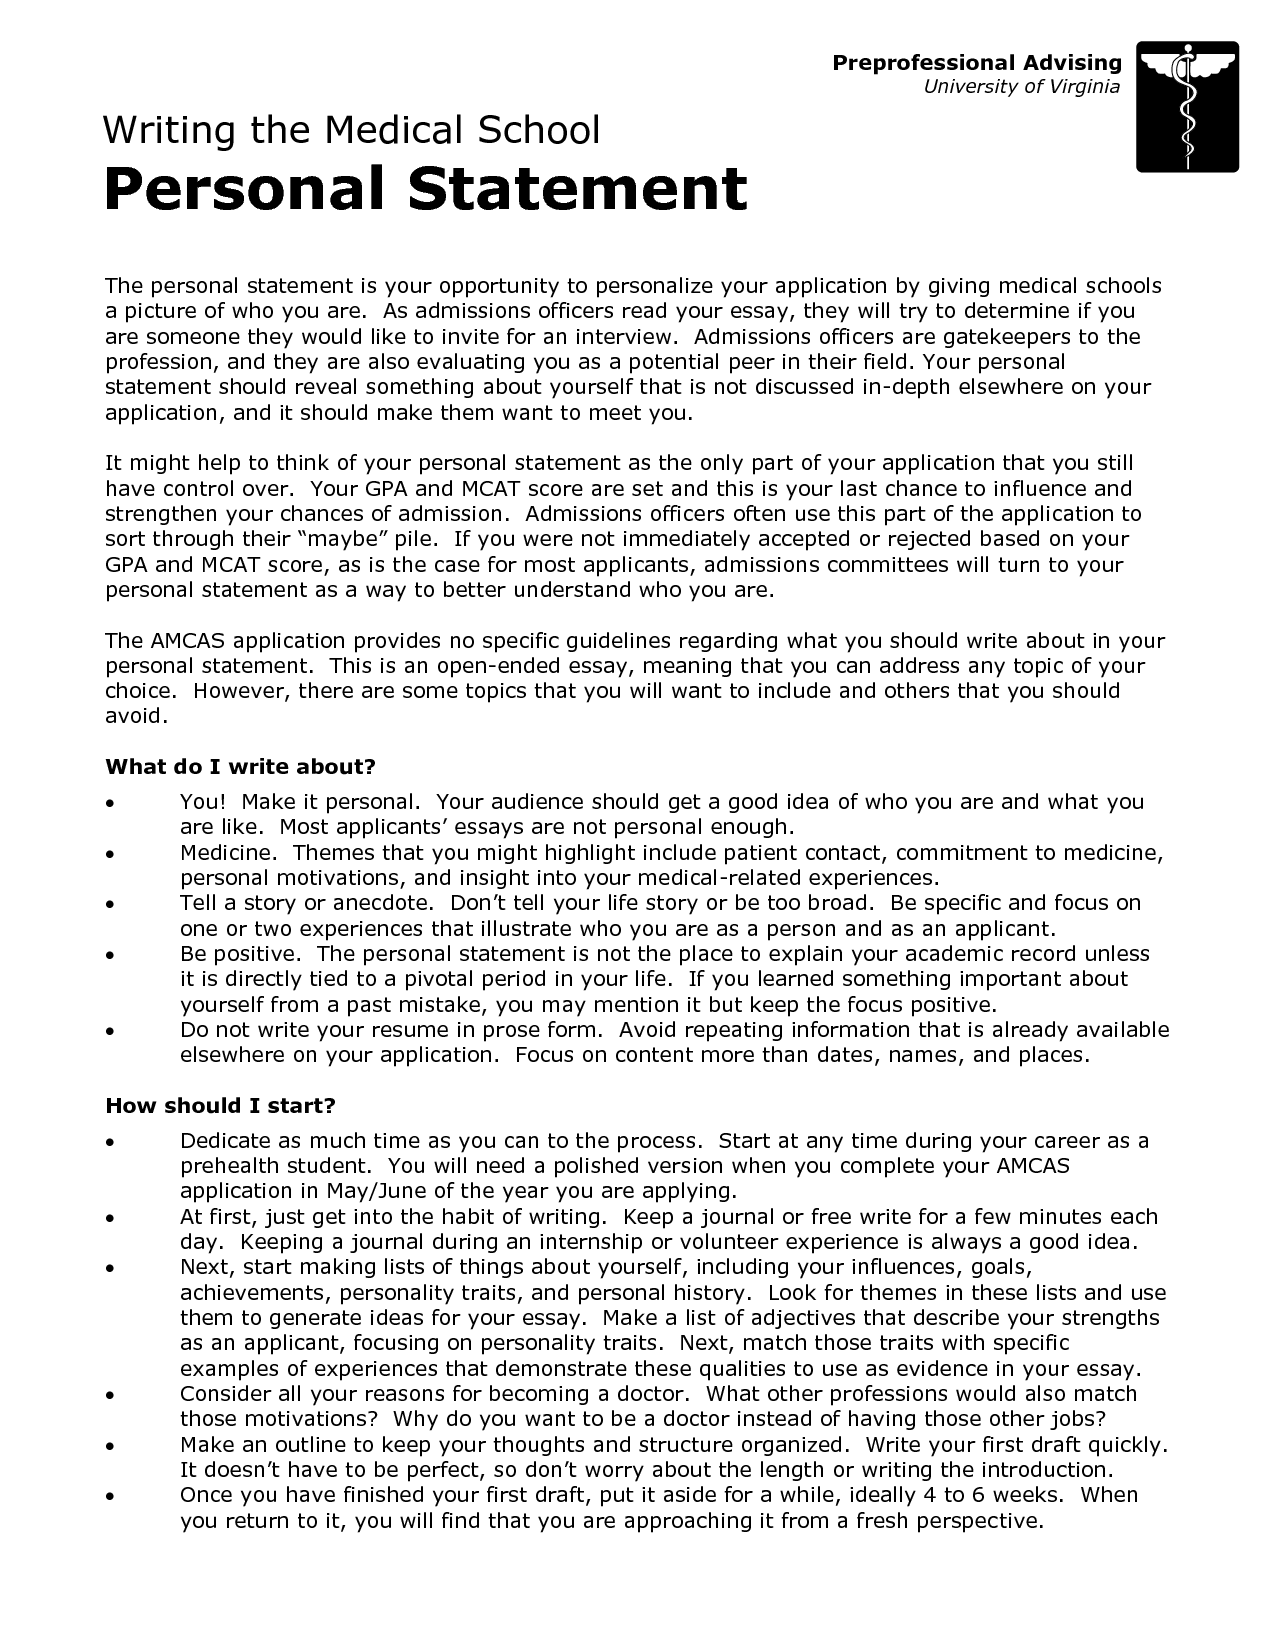 personal statement 8 essay The approach i love to brainstorm topic ideas for any personal-statement essays (like uc prompt 8) is to first identify a short list of your defining qualities, characteristics or values (find your core qualities and core values in these posts).